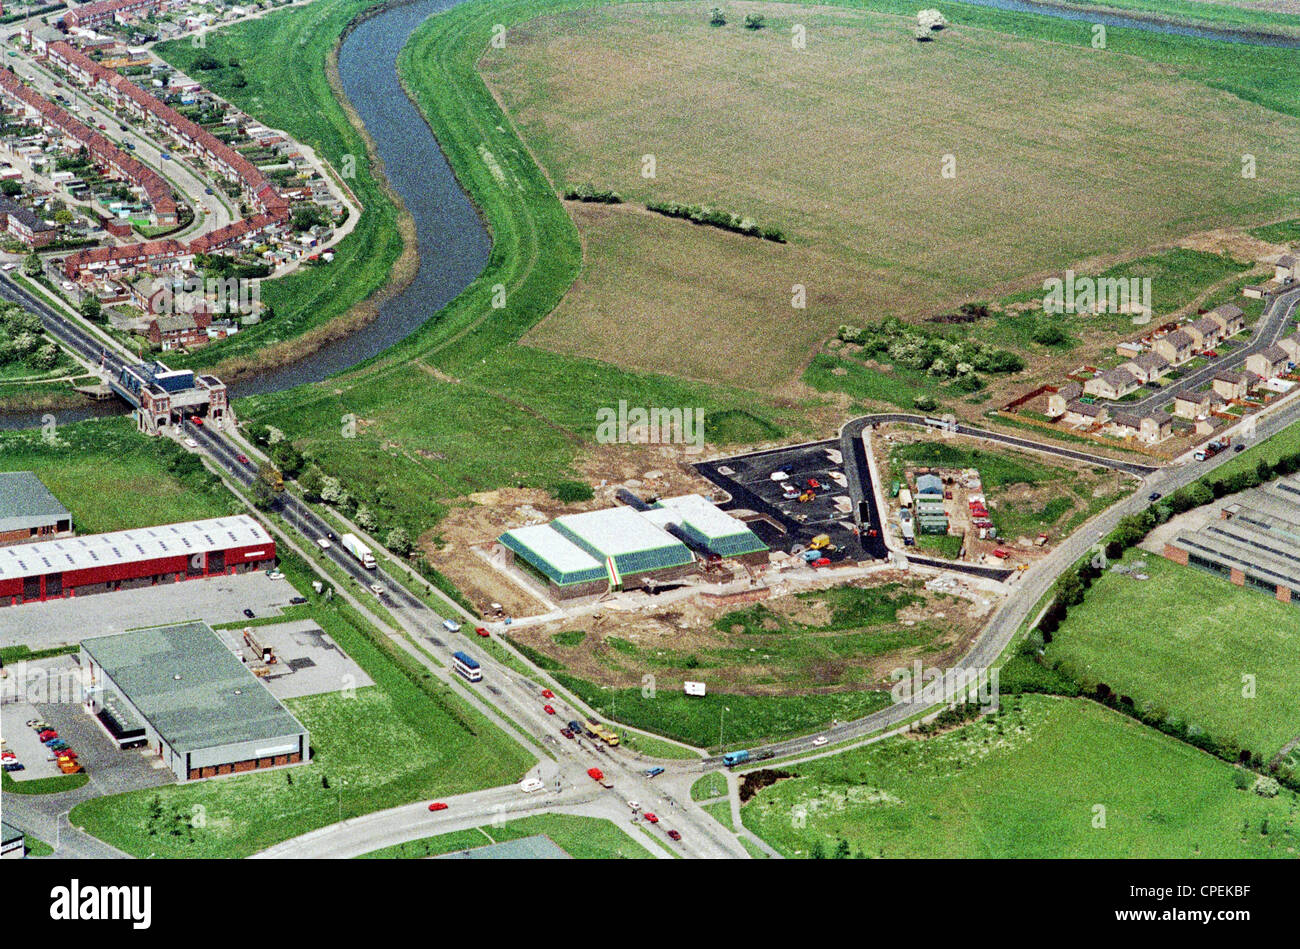 Oblique aerial view of north Hull showing Sutton Road bridge over the River Hull with residential and industrial - Stock Image